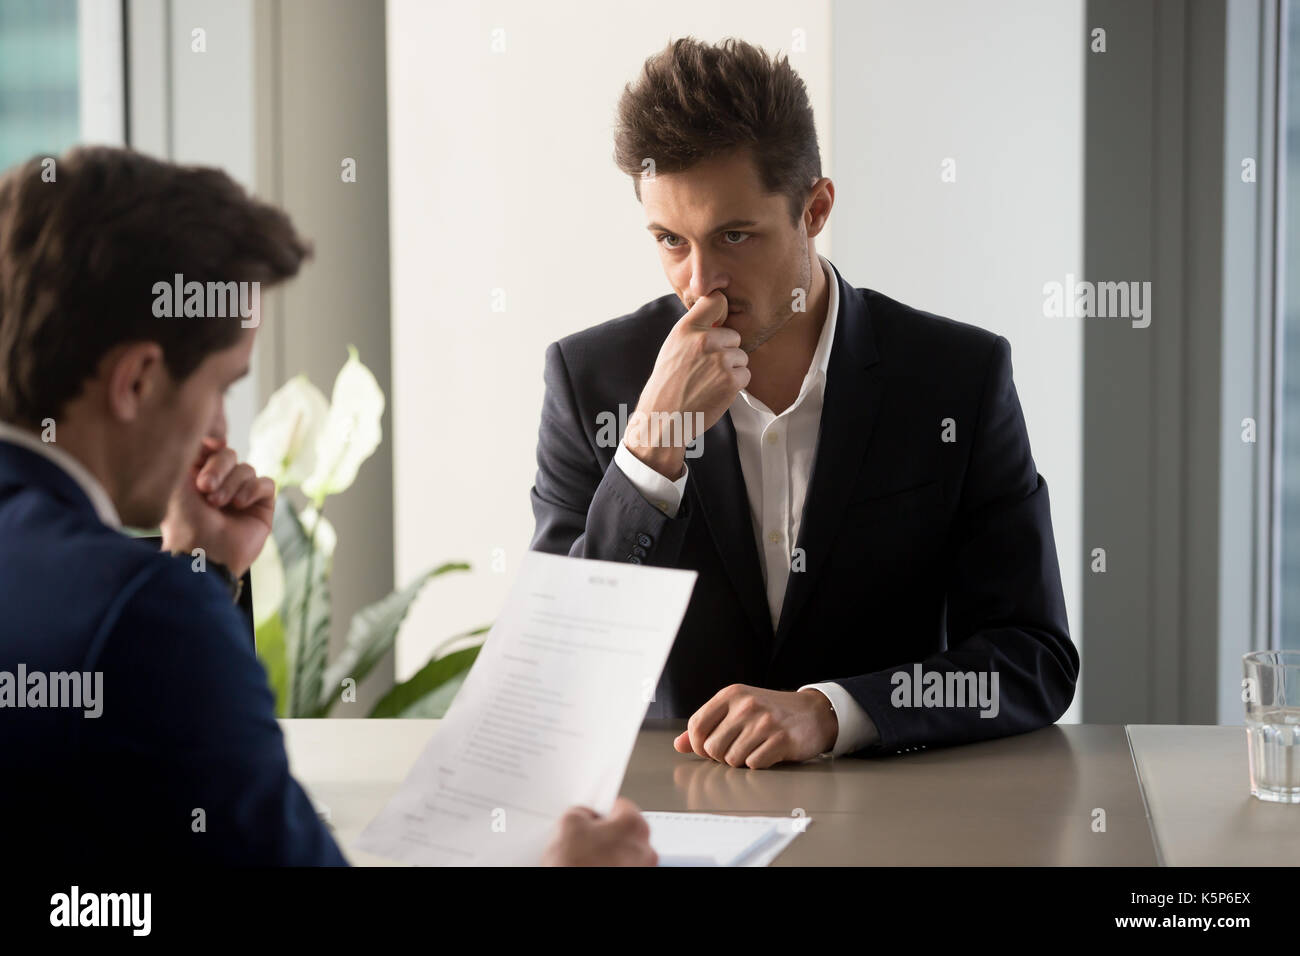 Worried job applicant waiting hiring decision - Stock Image